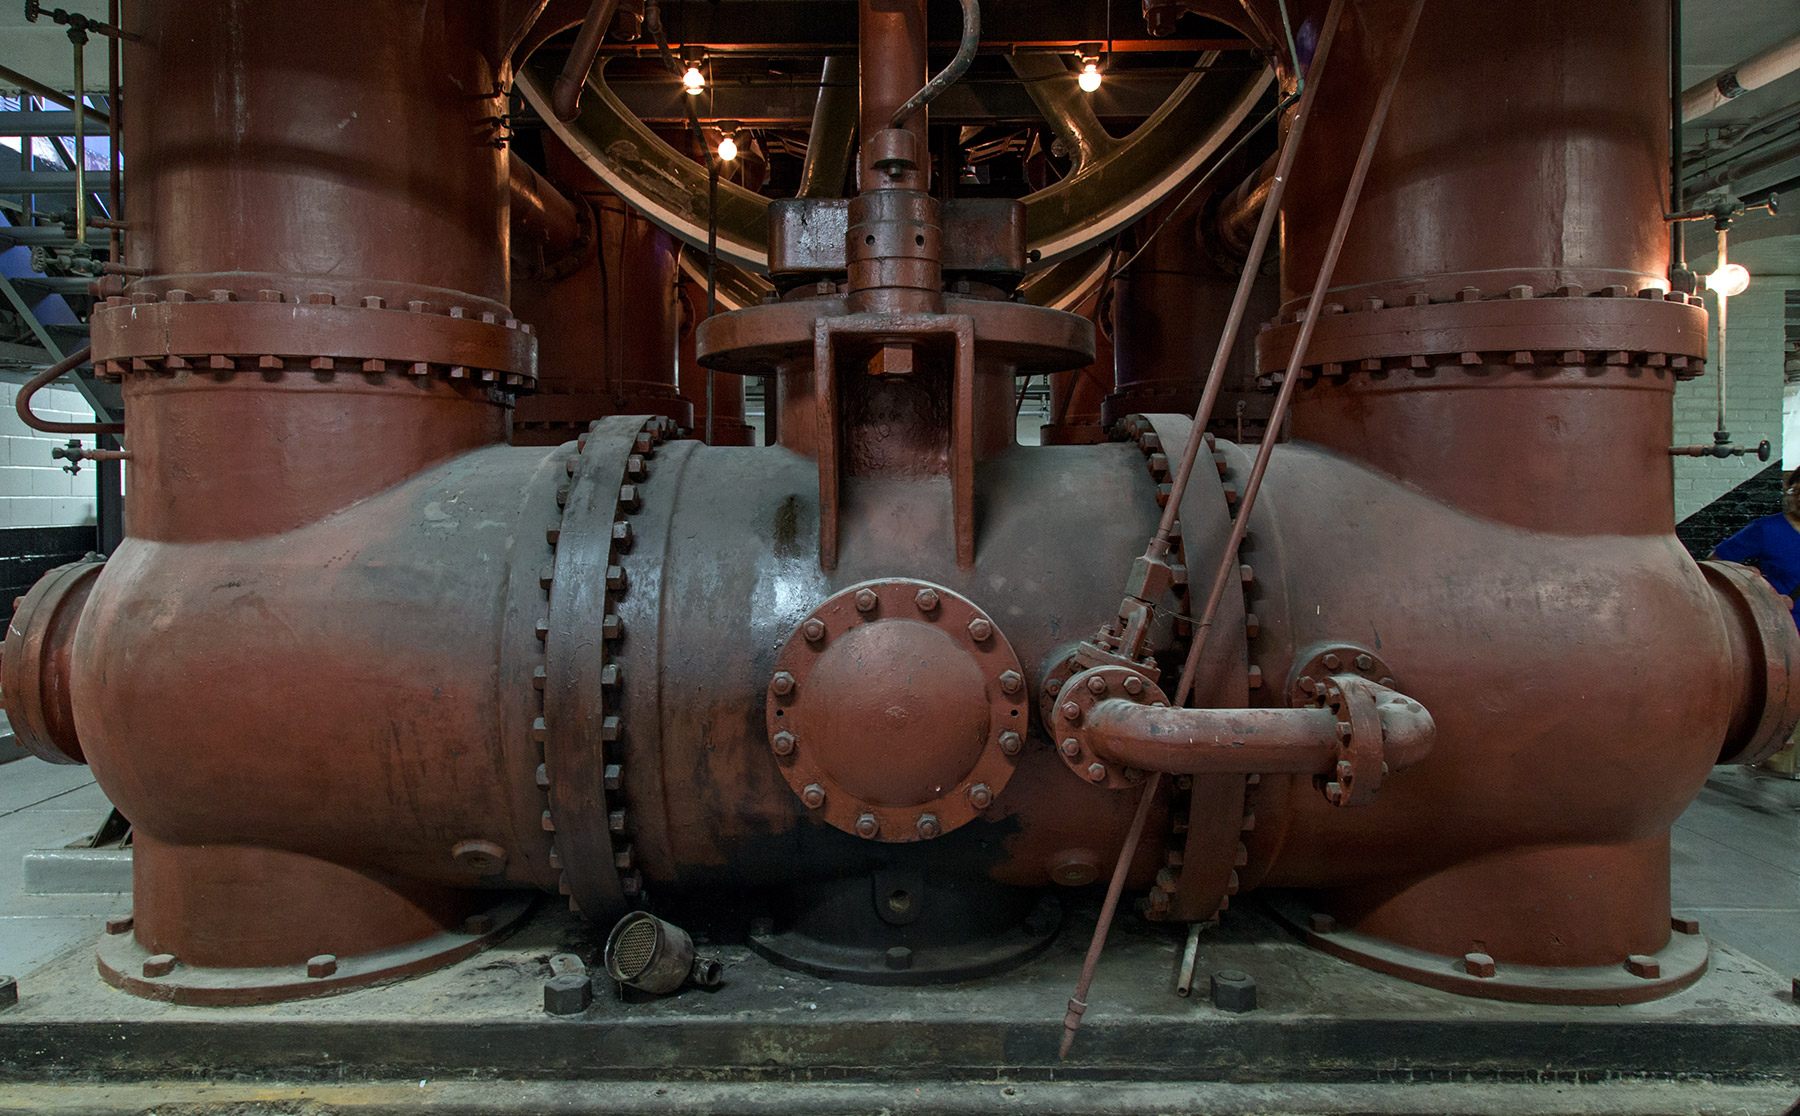 20150518. Gawk at the 1909 steam engine that once powered the Hi